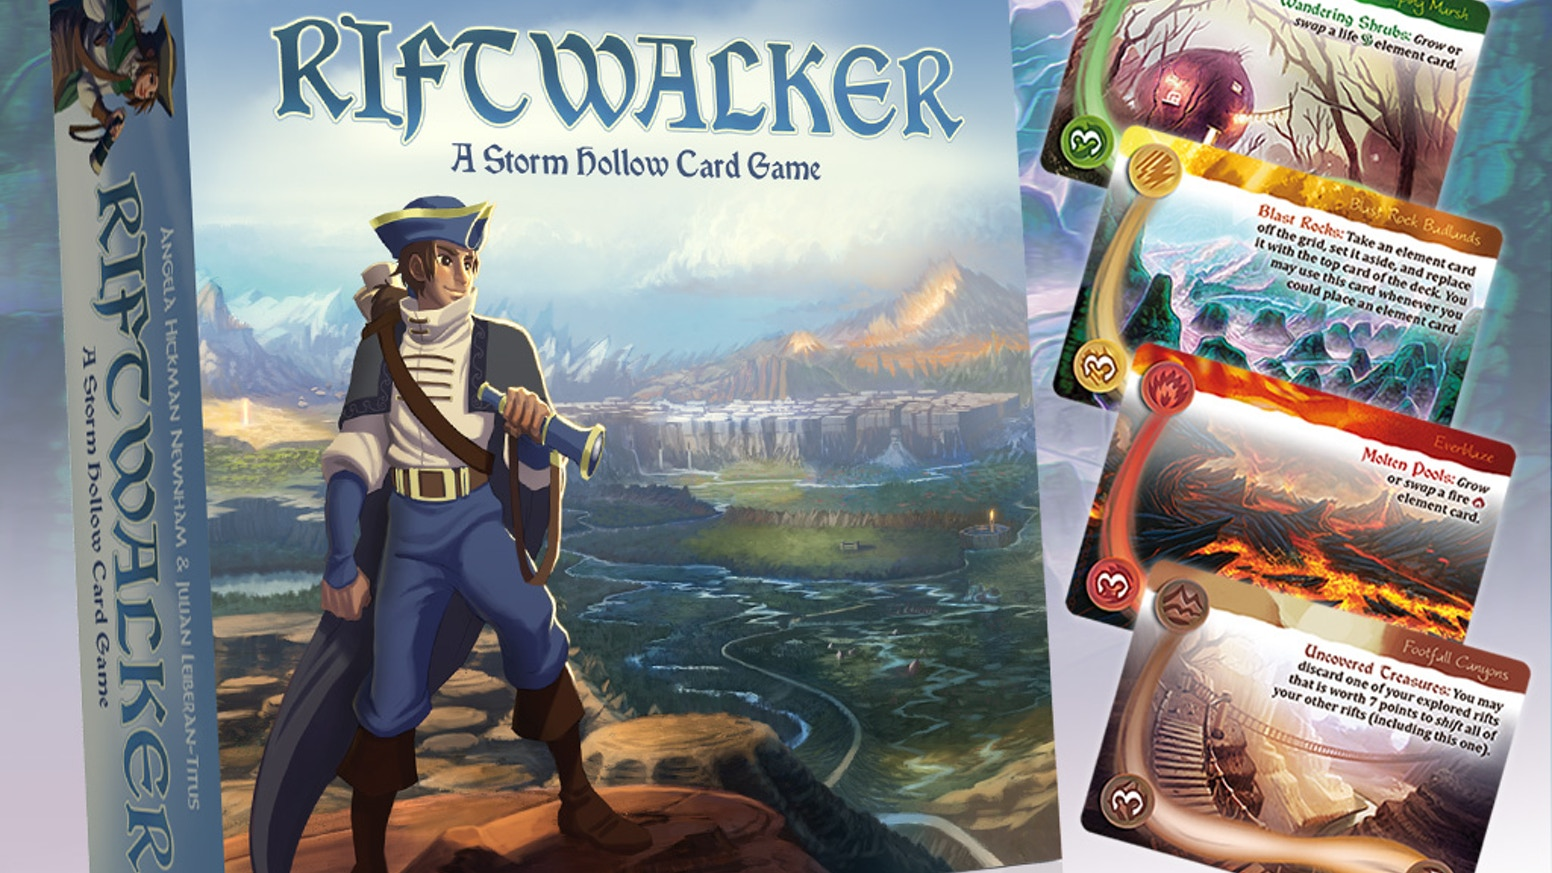 A strategy card game set in Storm Hollow. Explore the world and weave its elements to become a legendary Riftwalker.